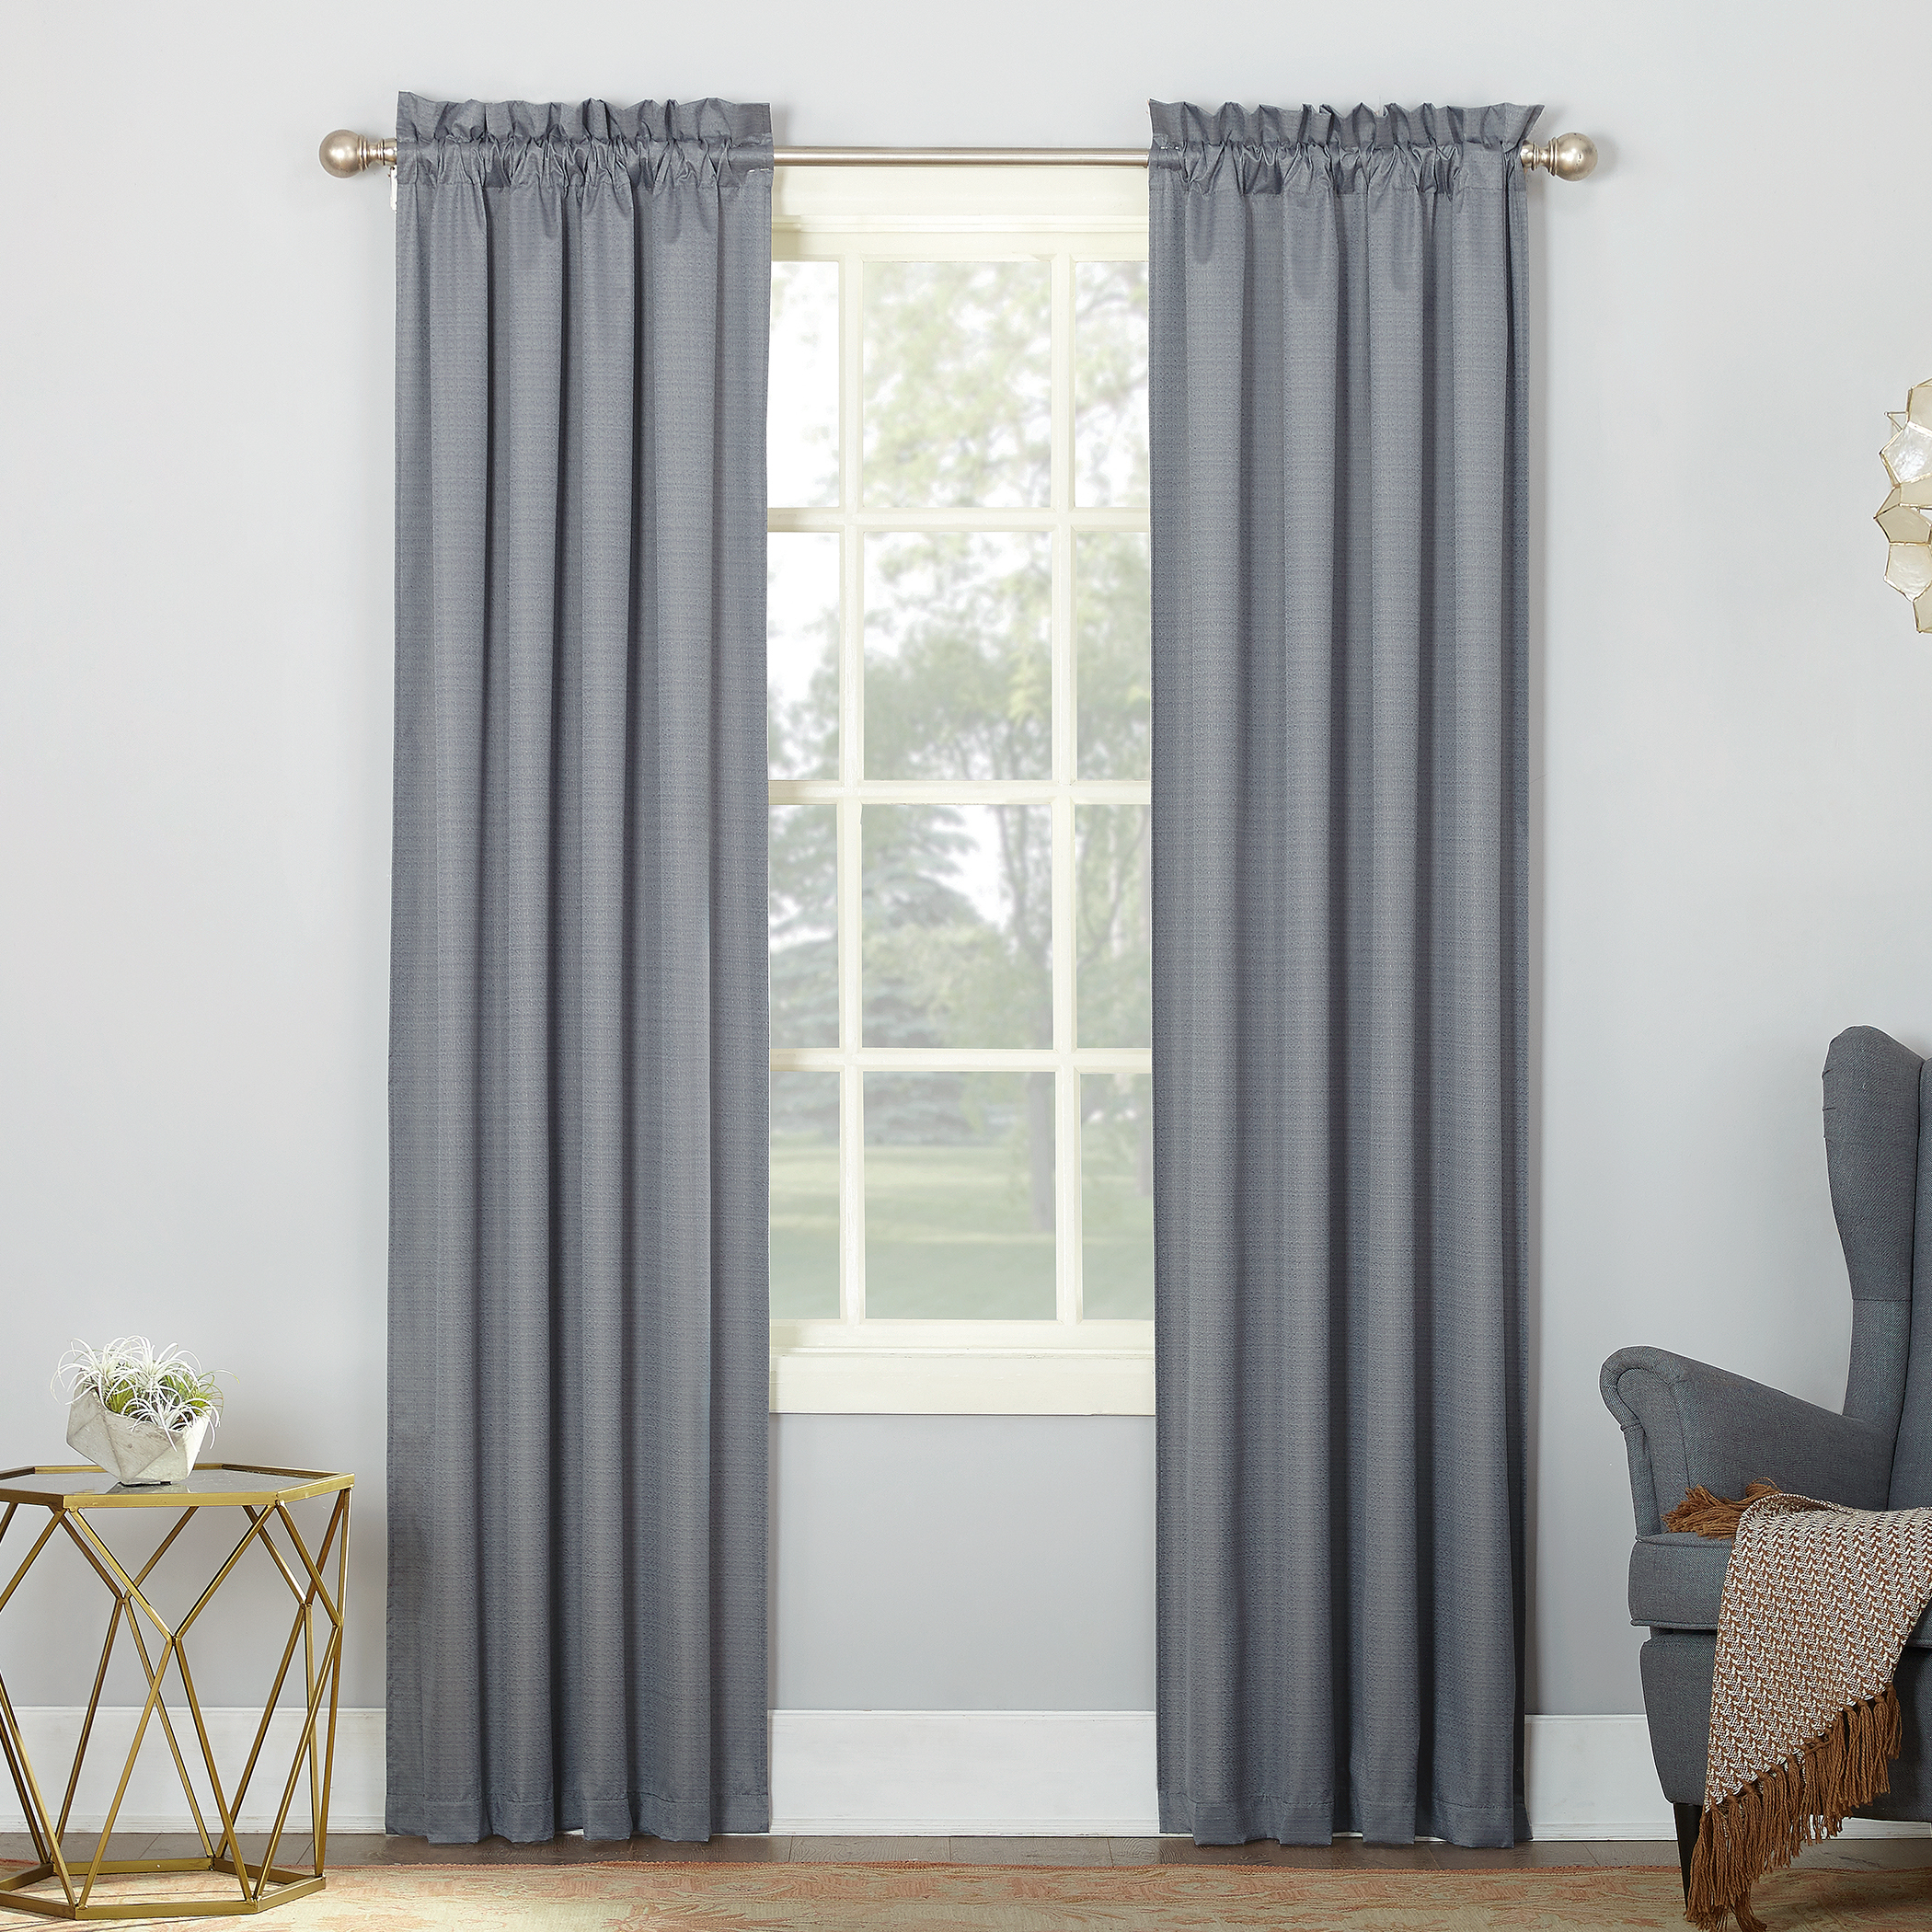 Sun Zero Riku 2 Pack Thermal Insulated Room Darkening Rod Pocket Curtain Panel Pair Walmart Com Walmart Com